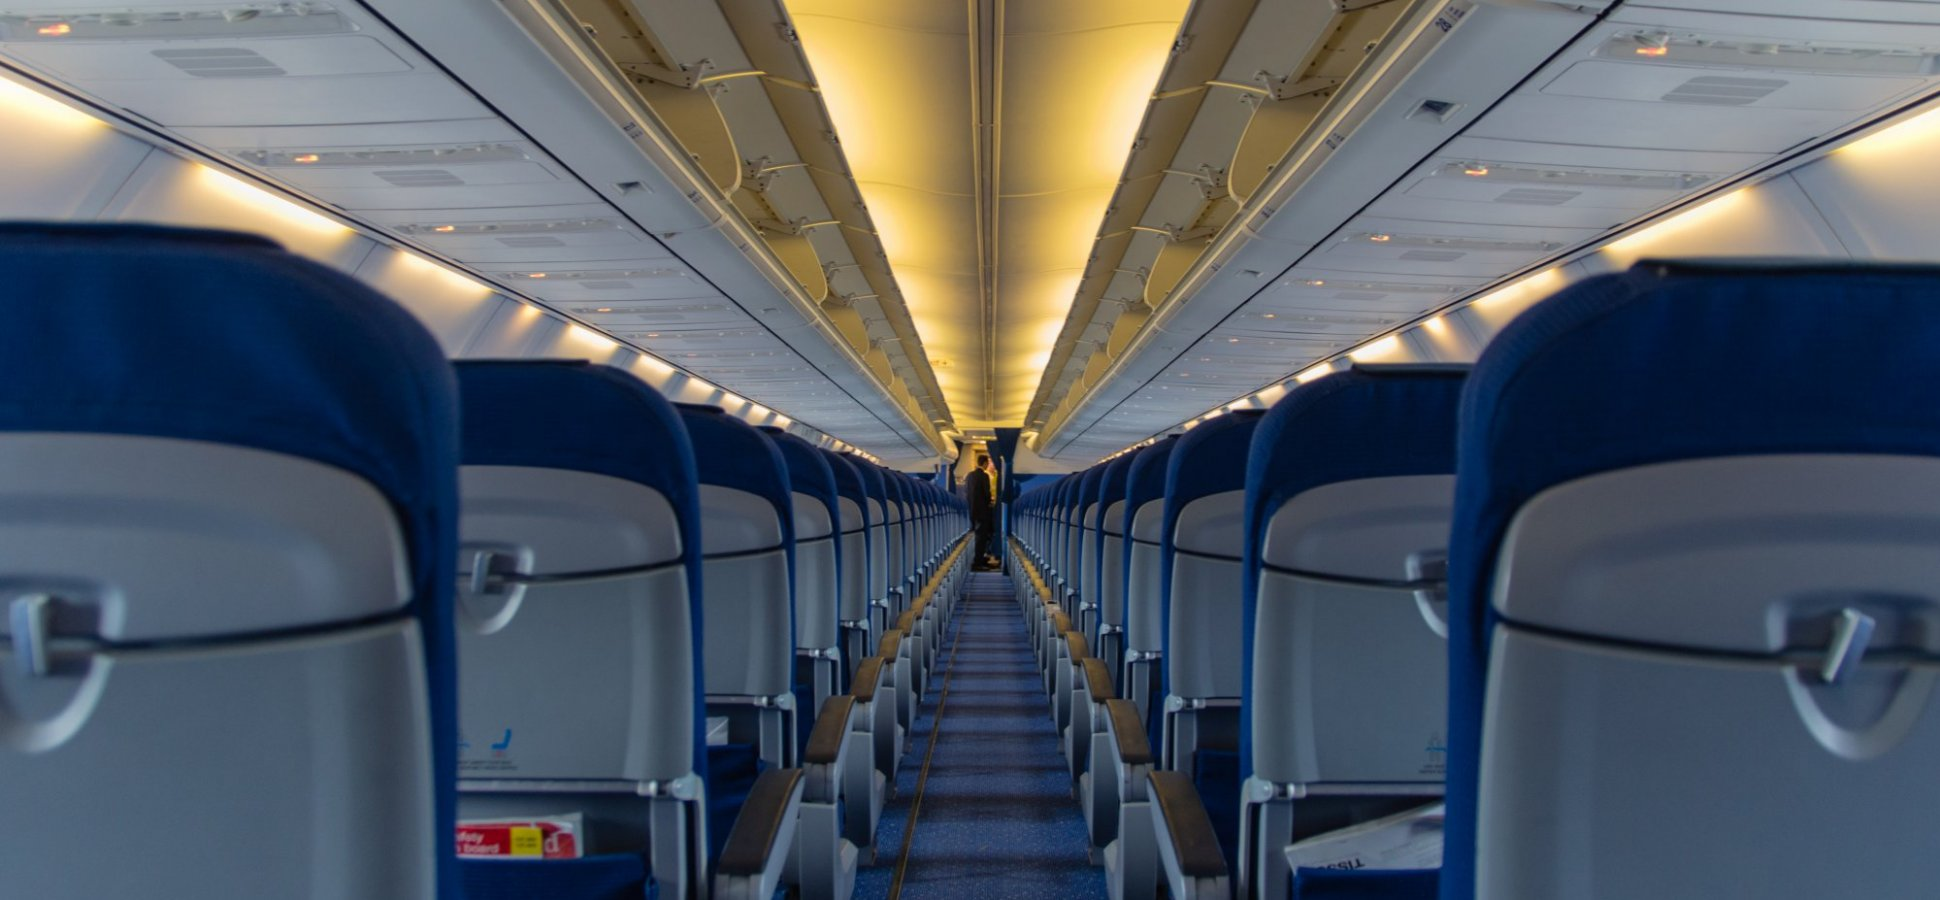 American Airlines Flight Attendant Union Representative Calls Airline Seats a 'Torture Chamber'